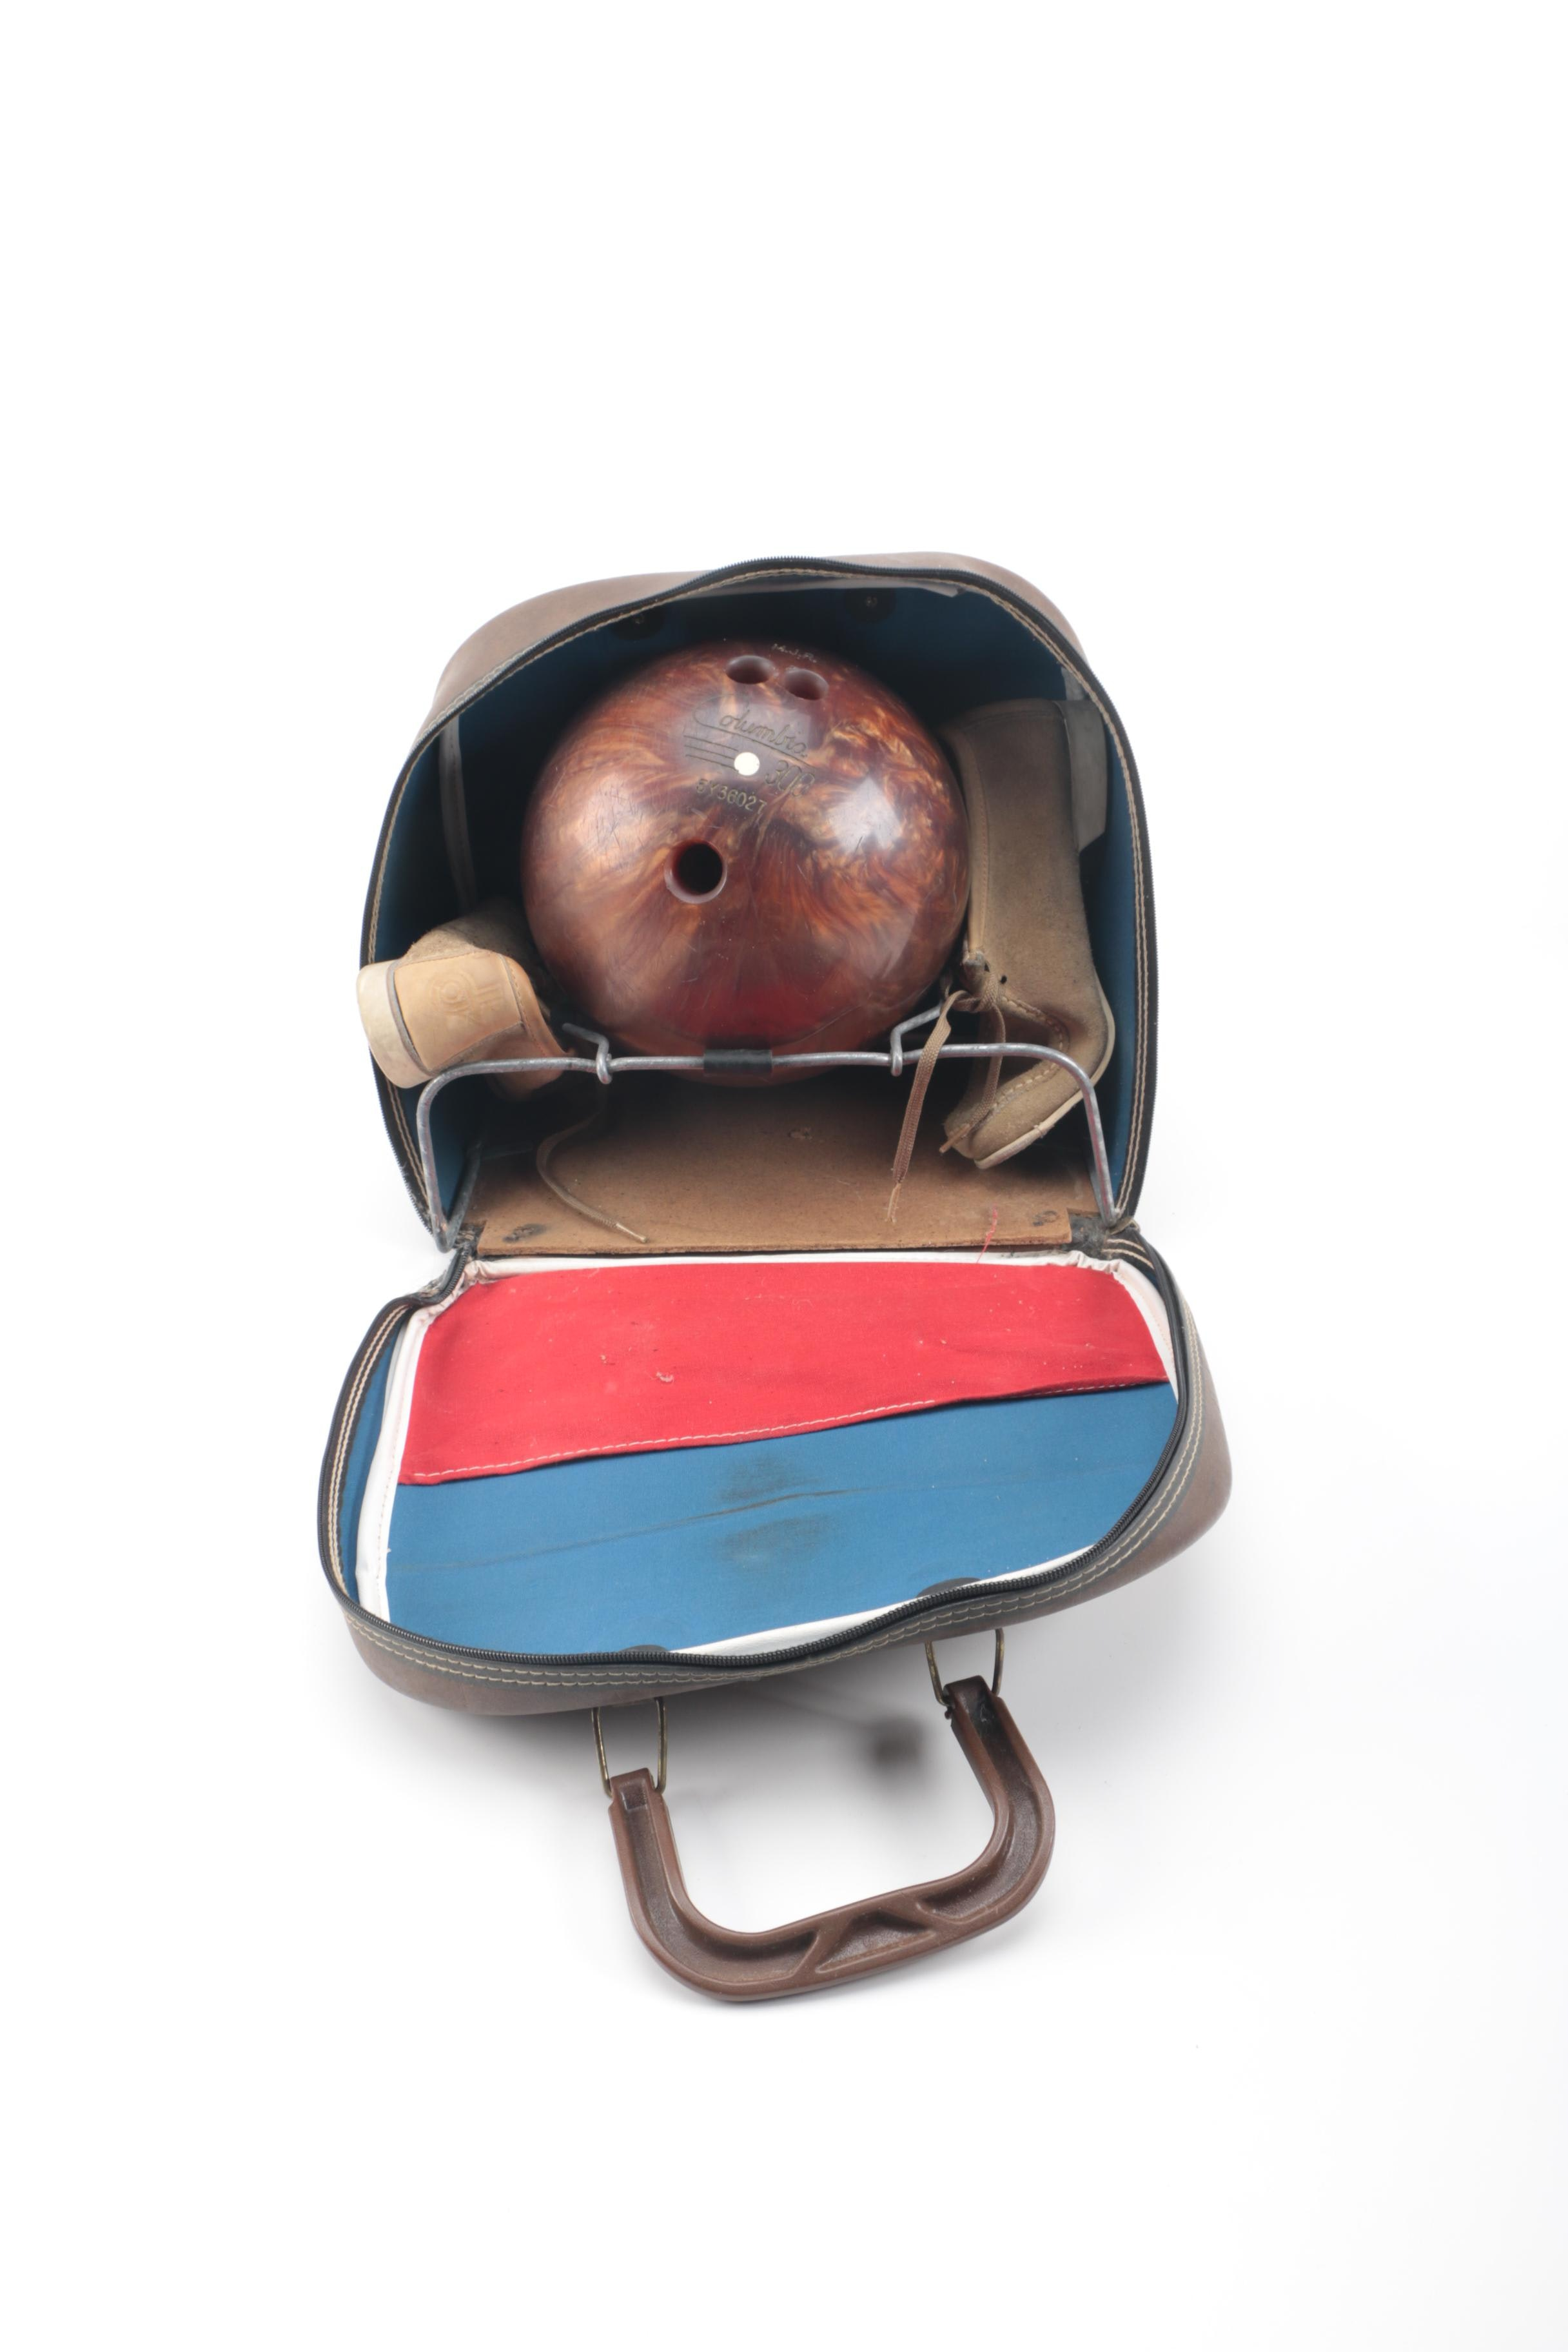 Bowling Ball in Bag with Shoes